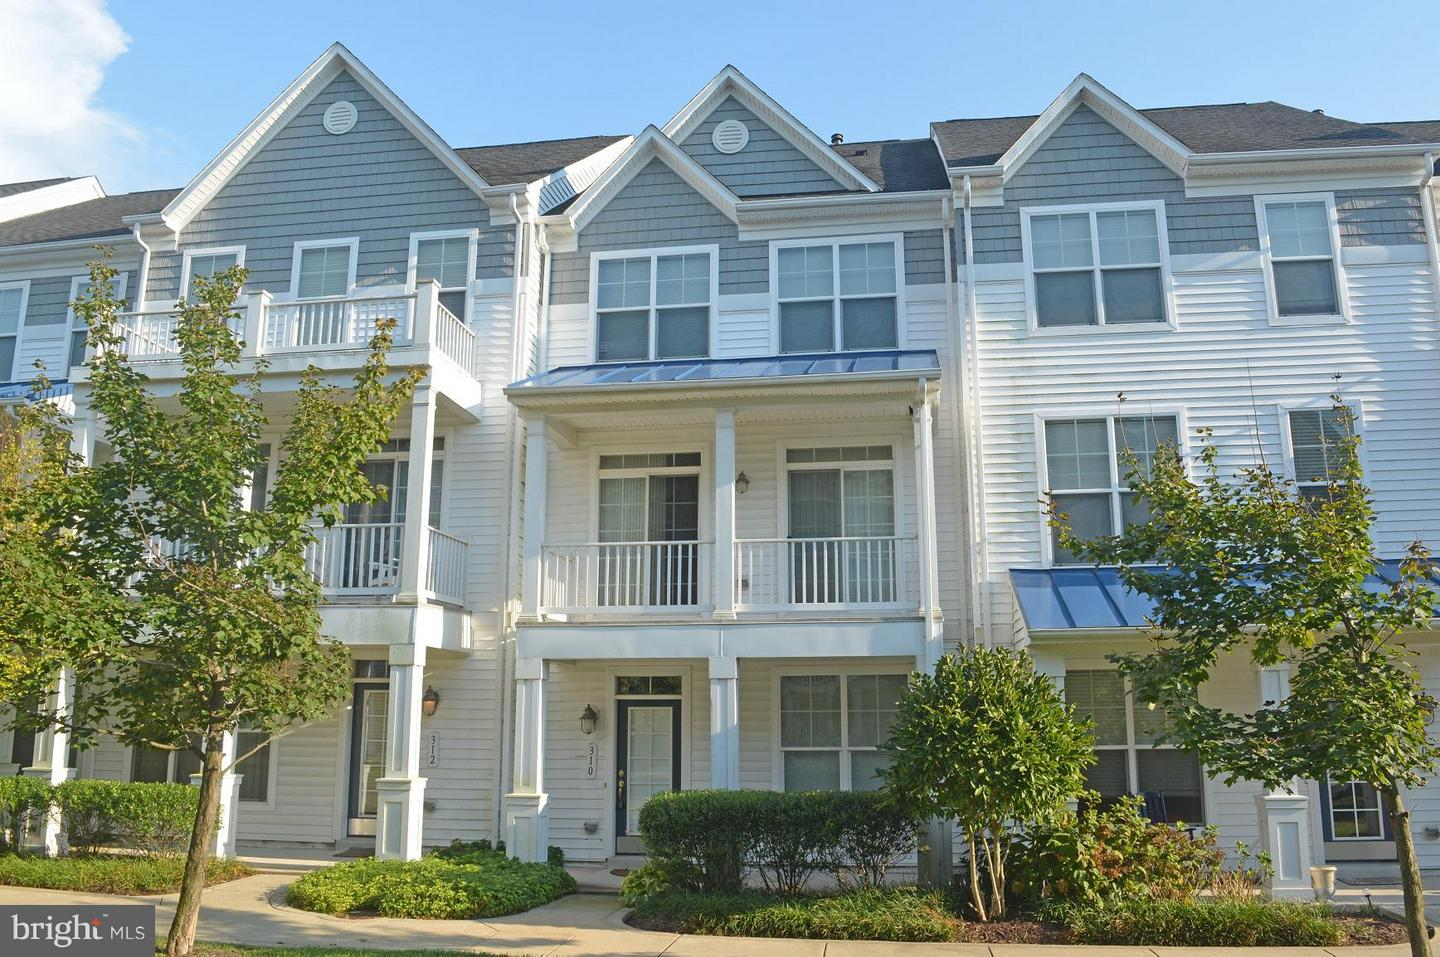 Single Family for Sale at 310 Shipyard Dr Cambridge, Maryland 21613 United States